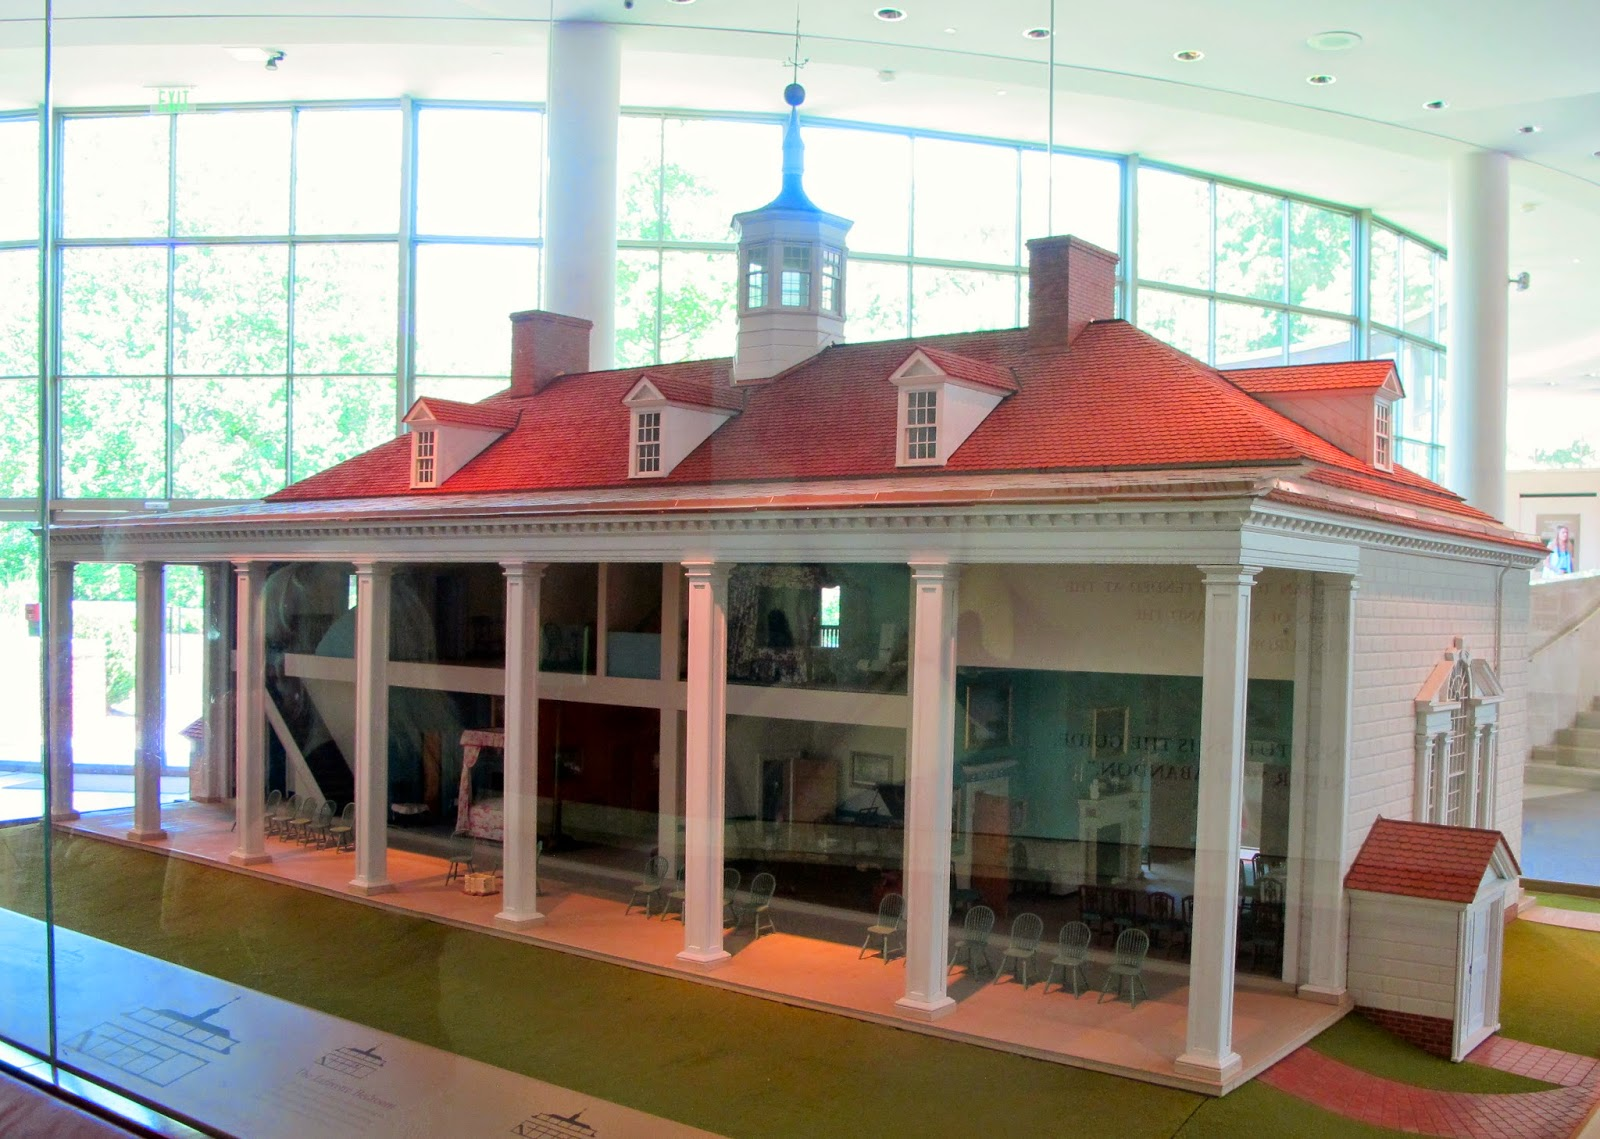 Susan S Mini Homes Mount Vernon In Miniature The Dollhouse